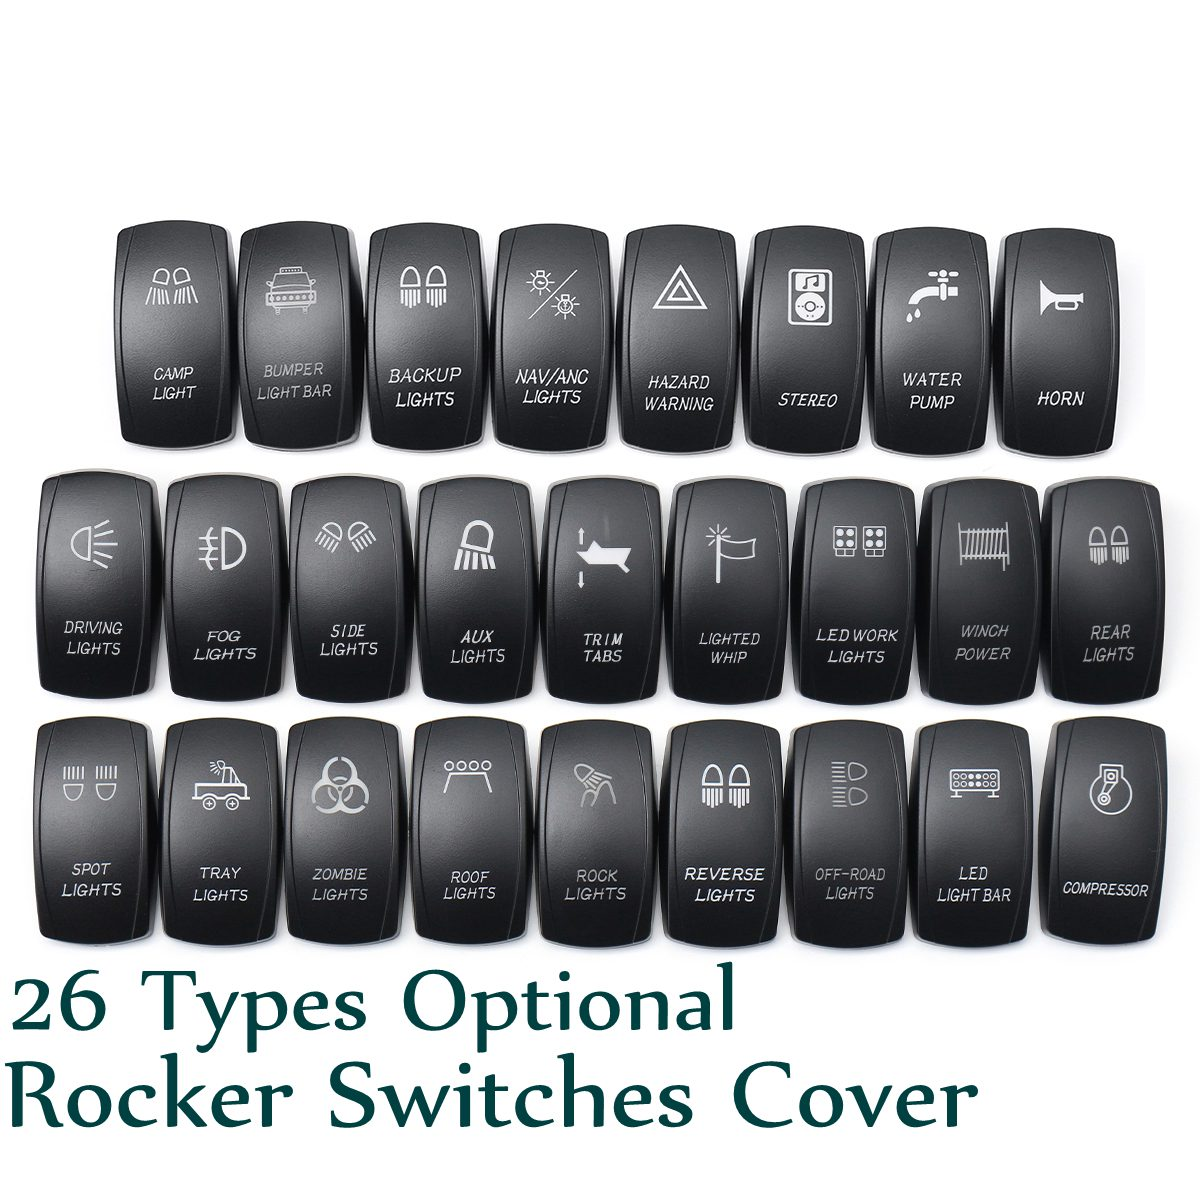 Boat Car Truck Carling Rocker Switches Cover Cap Laser